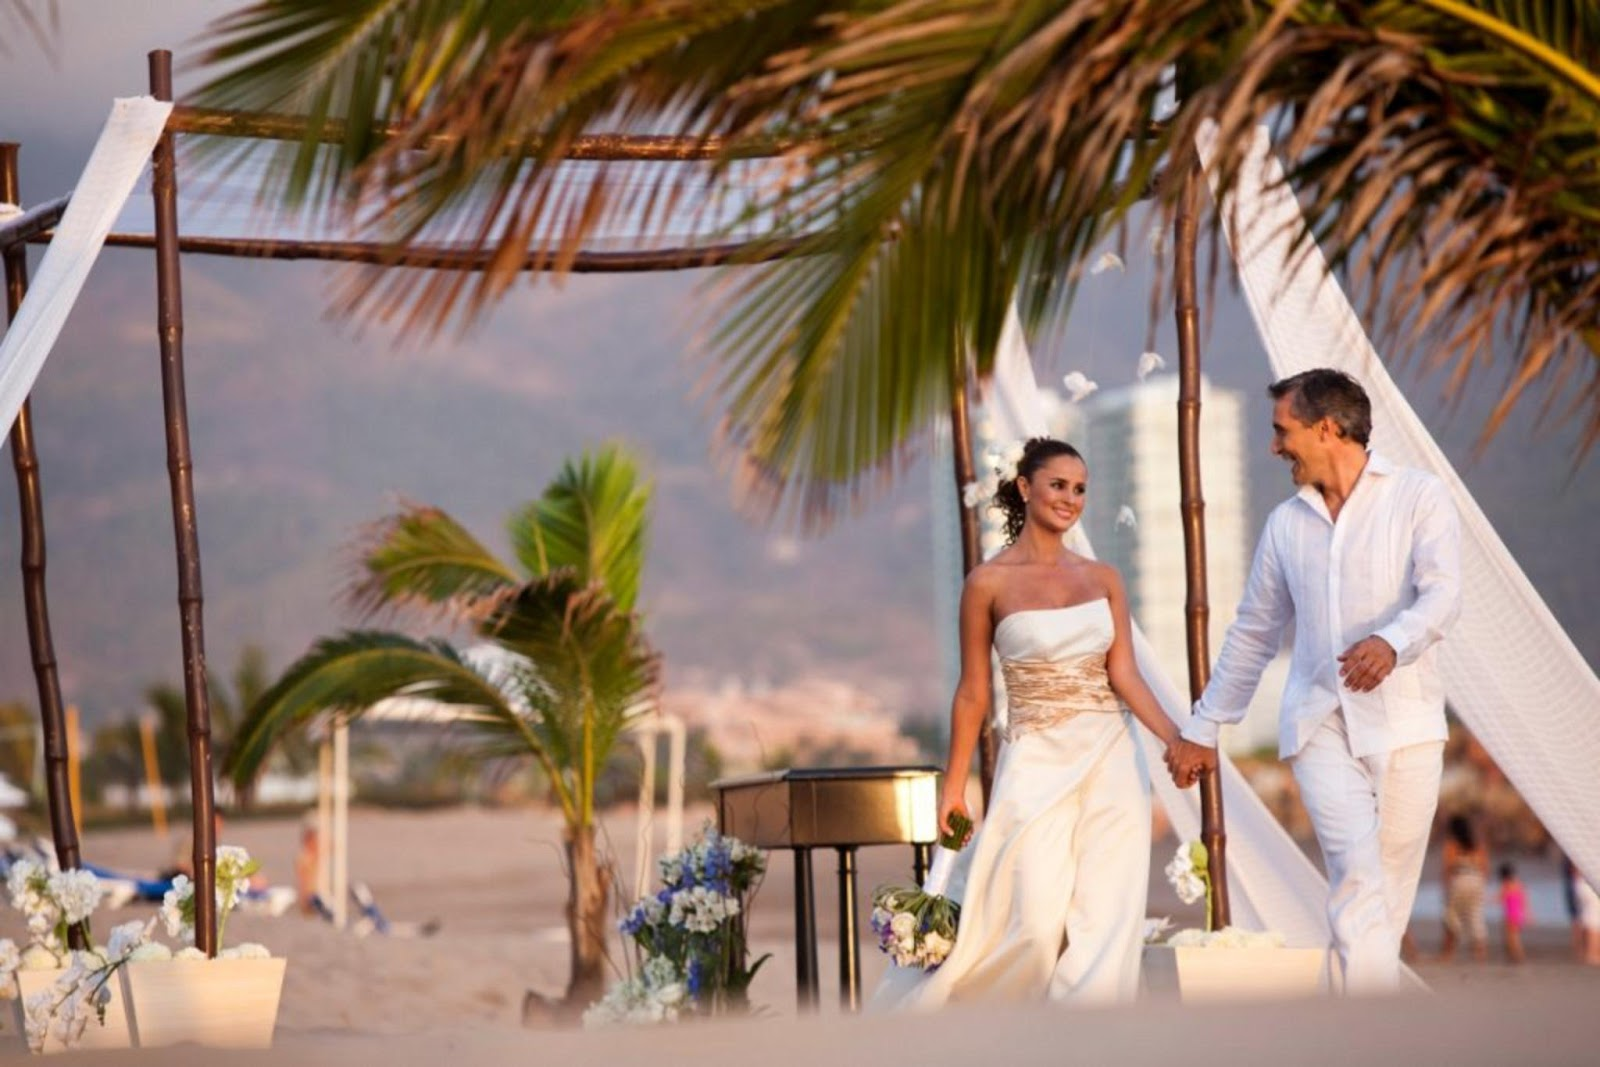 East coast resort honeymoon locations on the east coast for East coast beach wedding locations